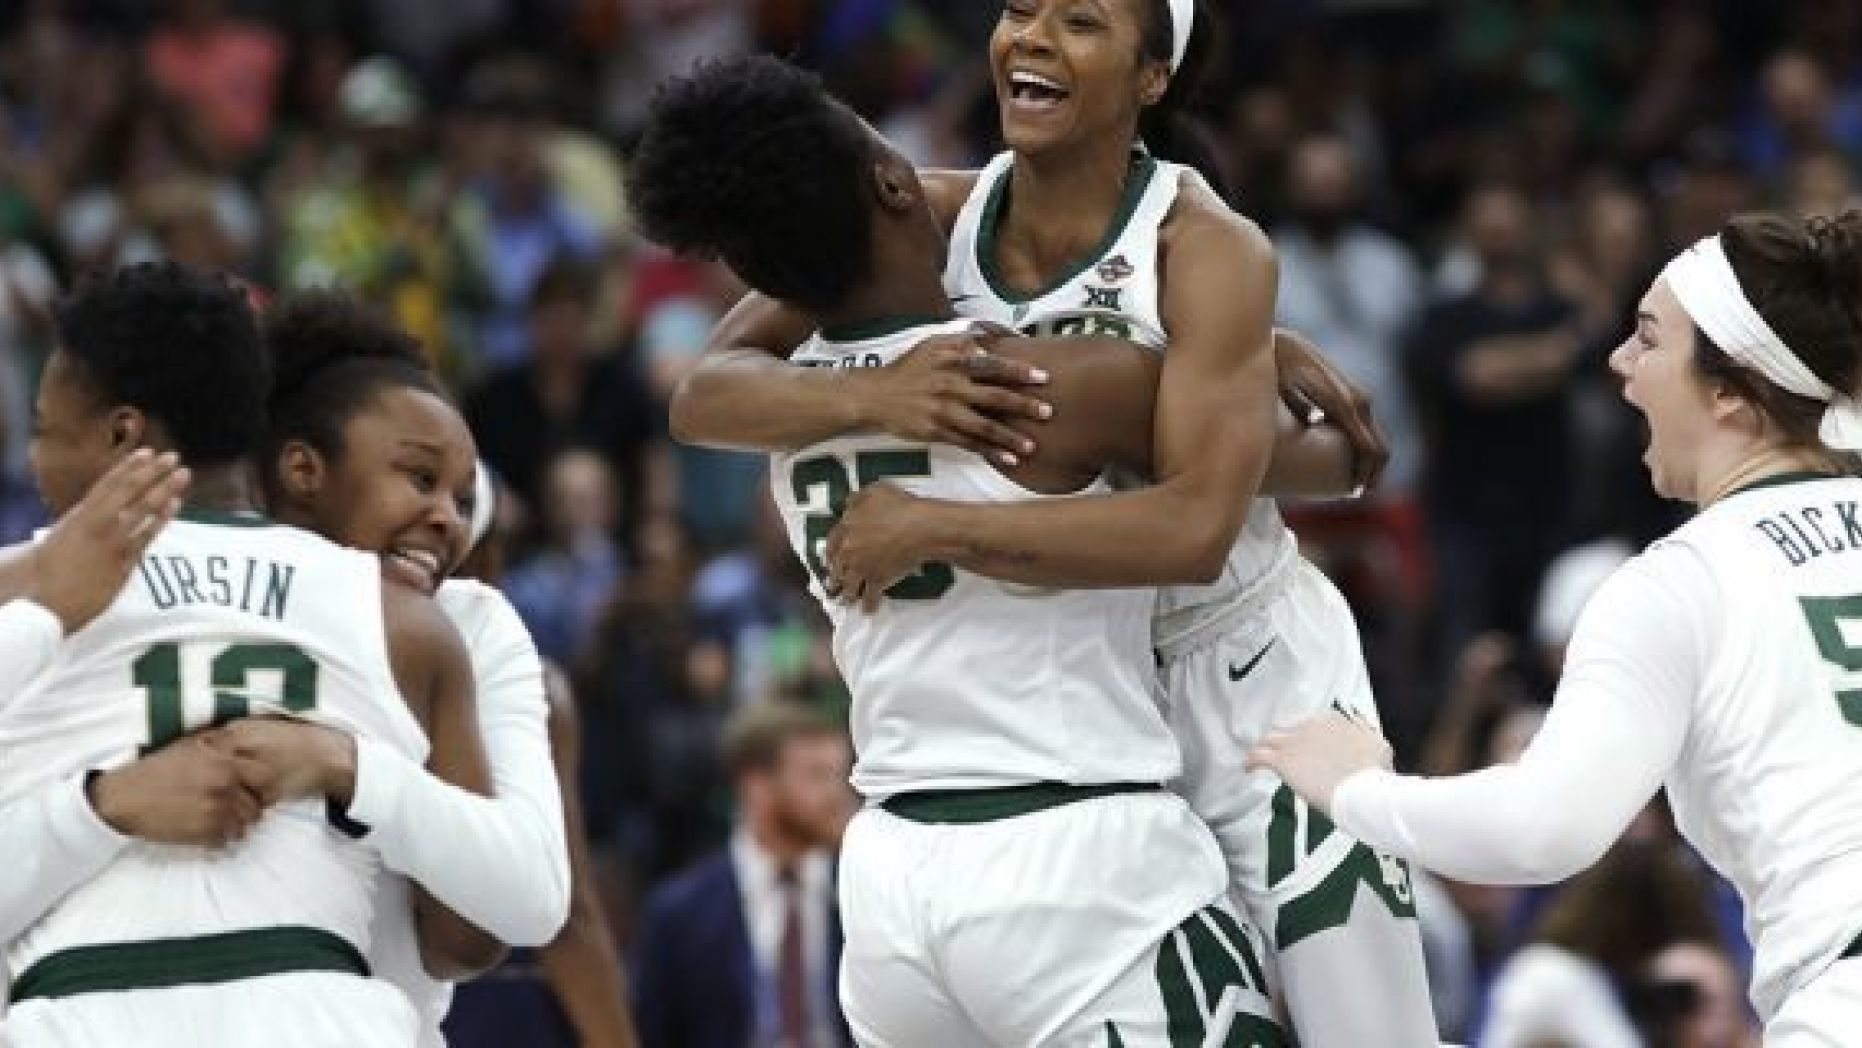 Baylor players celebrate after defeating Notre Dame in the Final Four championship game of the NCAA women